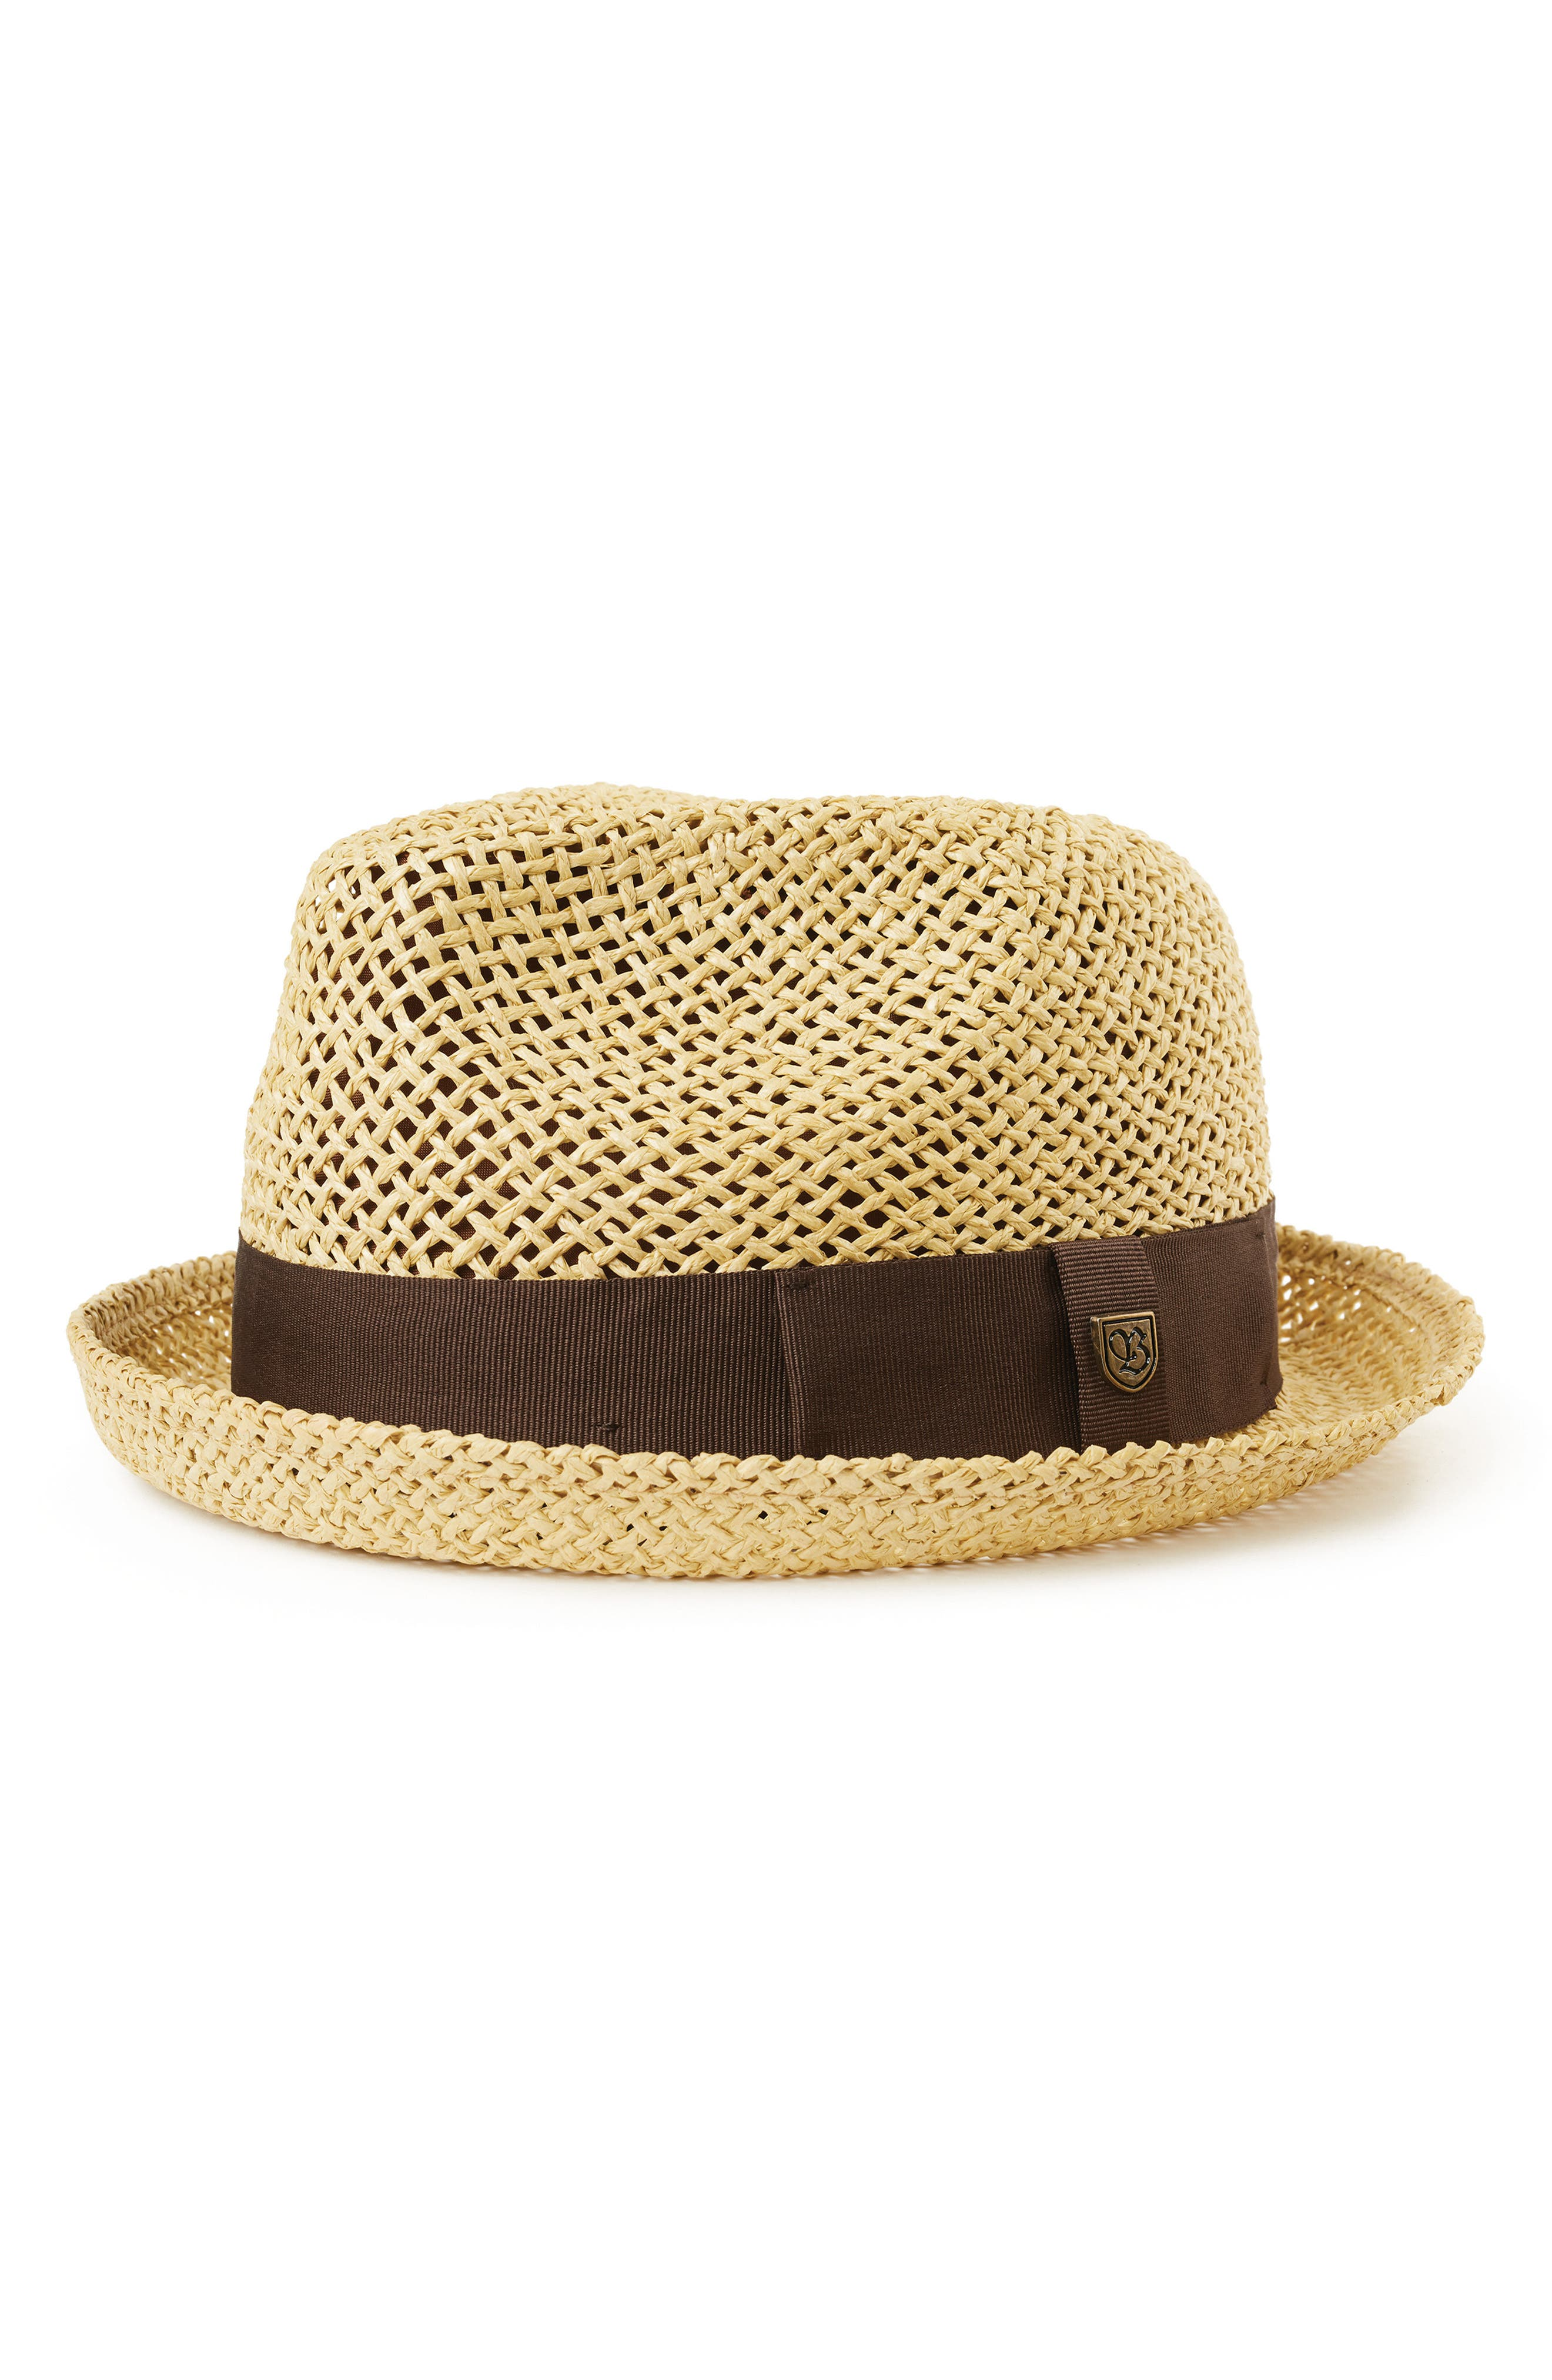 Brixton Castor Straw Fedora - Brown